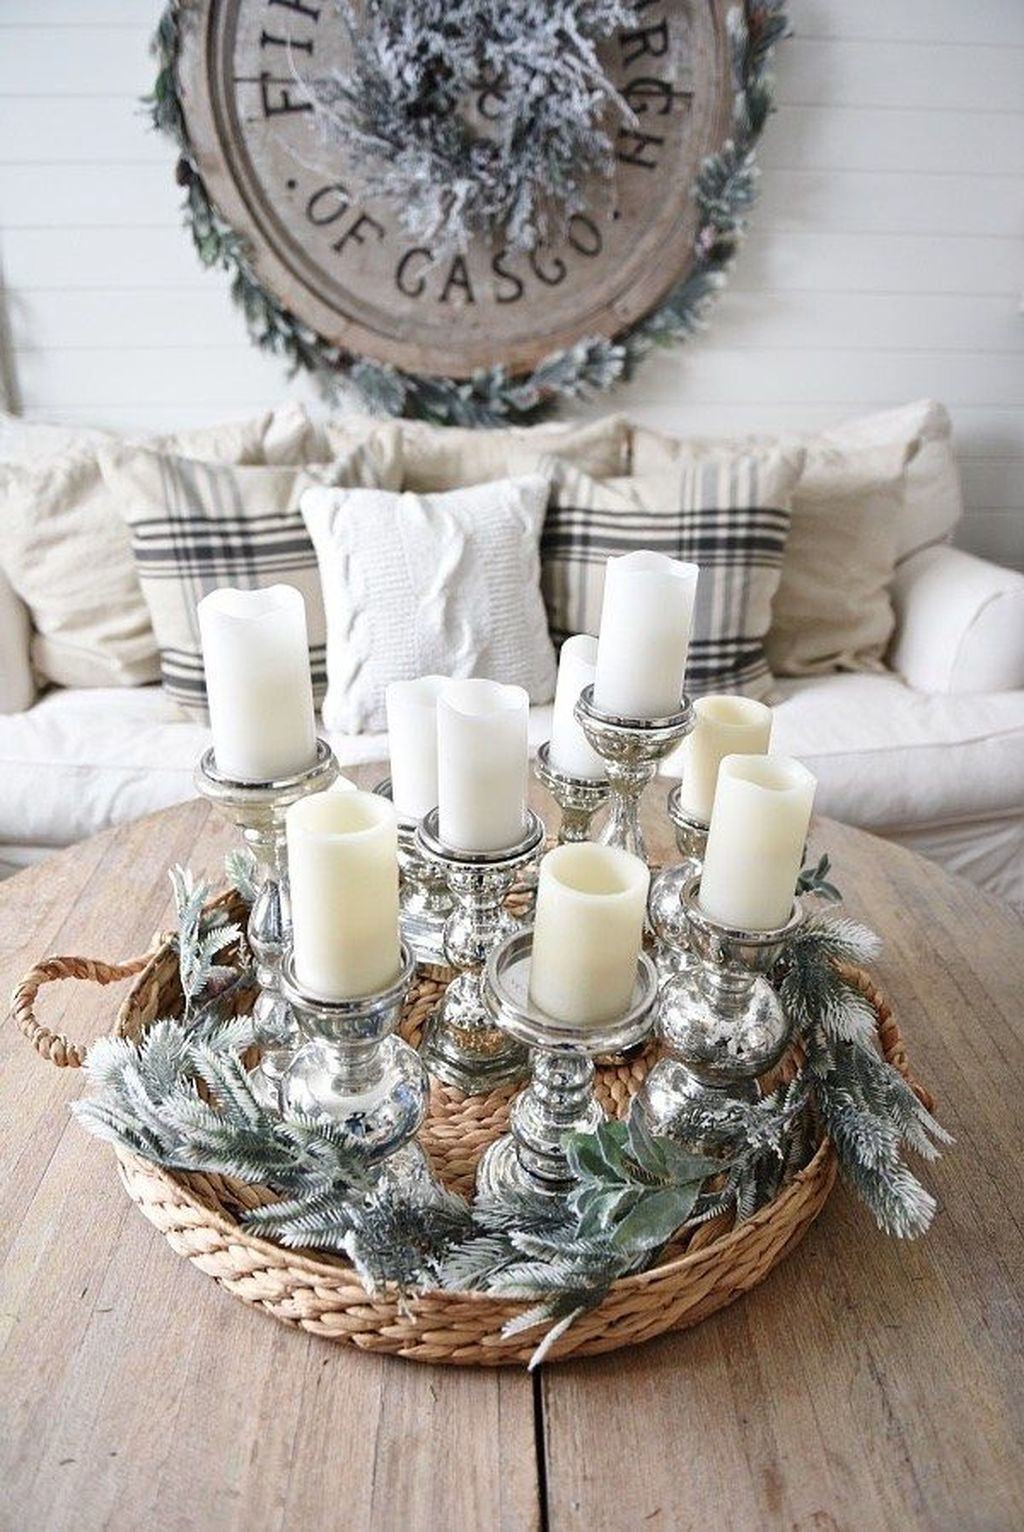 Applying Wooden Planks Correctly To Make Rustic Winter Home Decoration 15